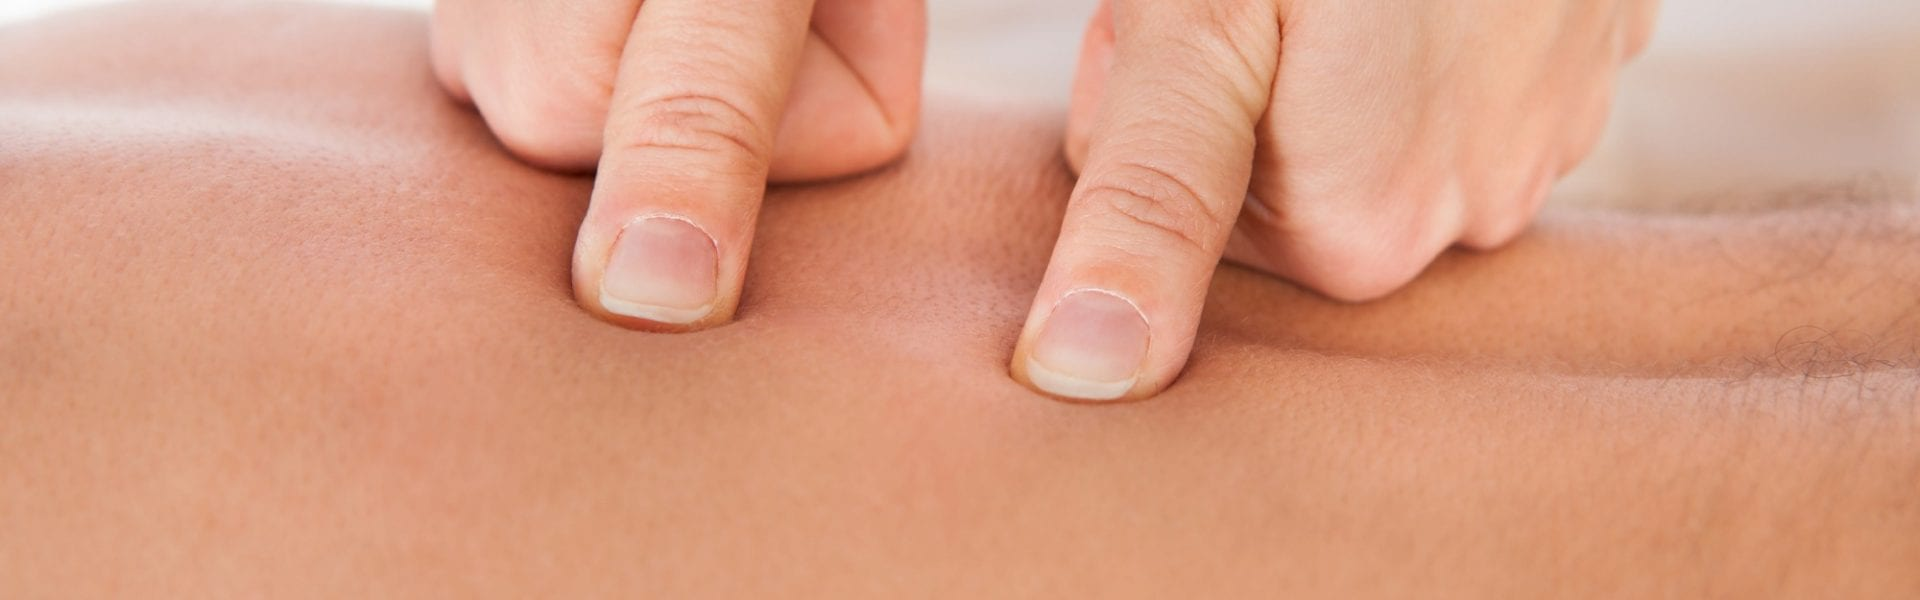 Shiatsu therapie in leeuwarden